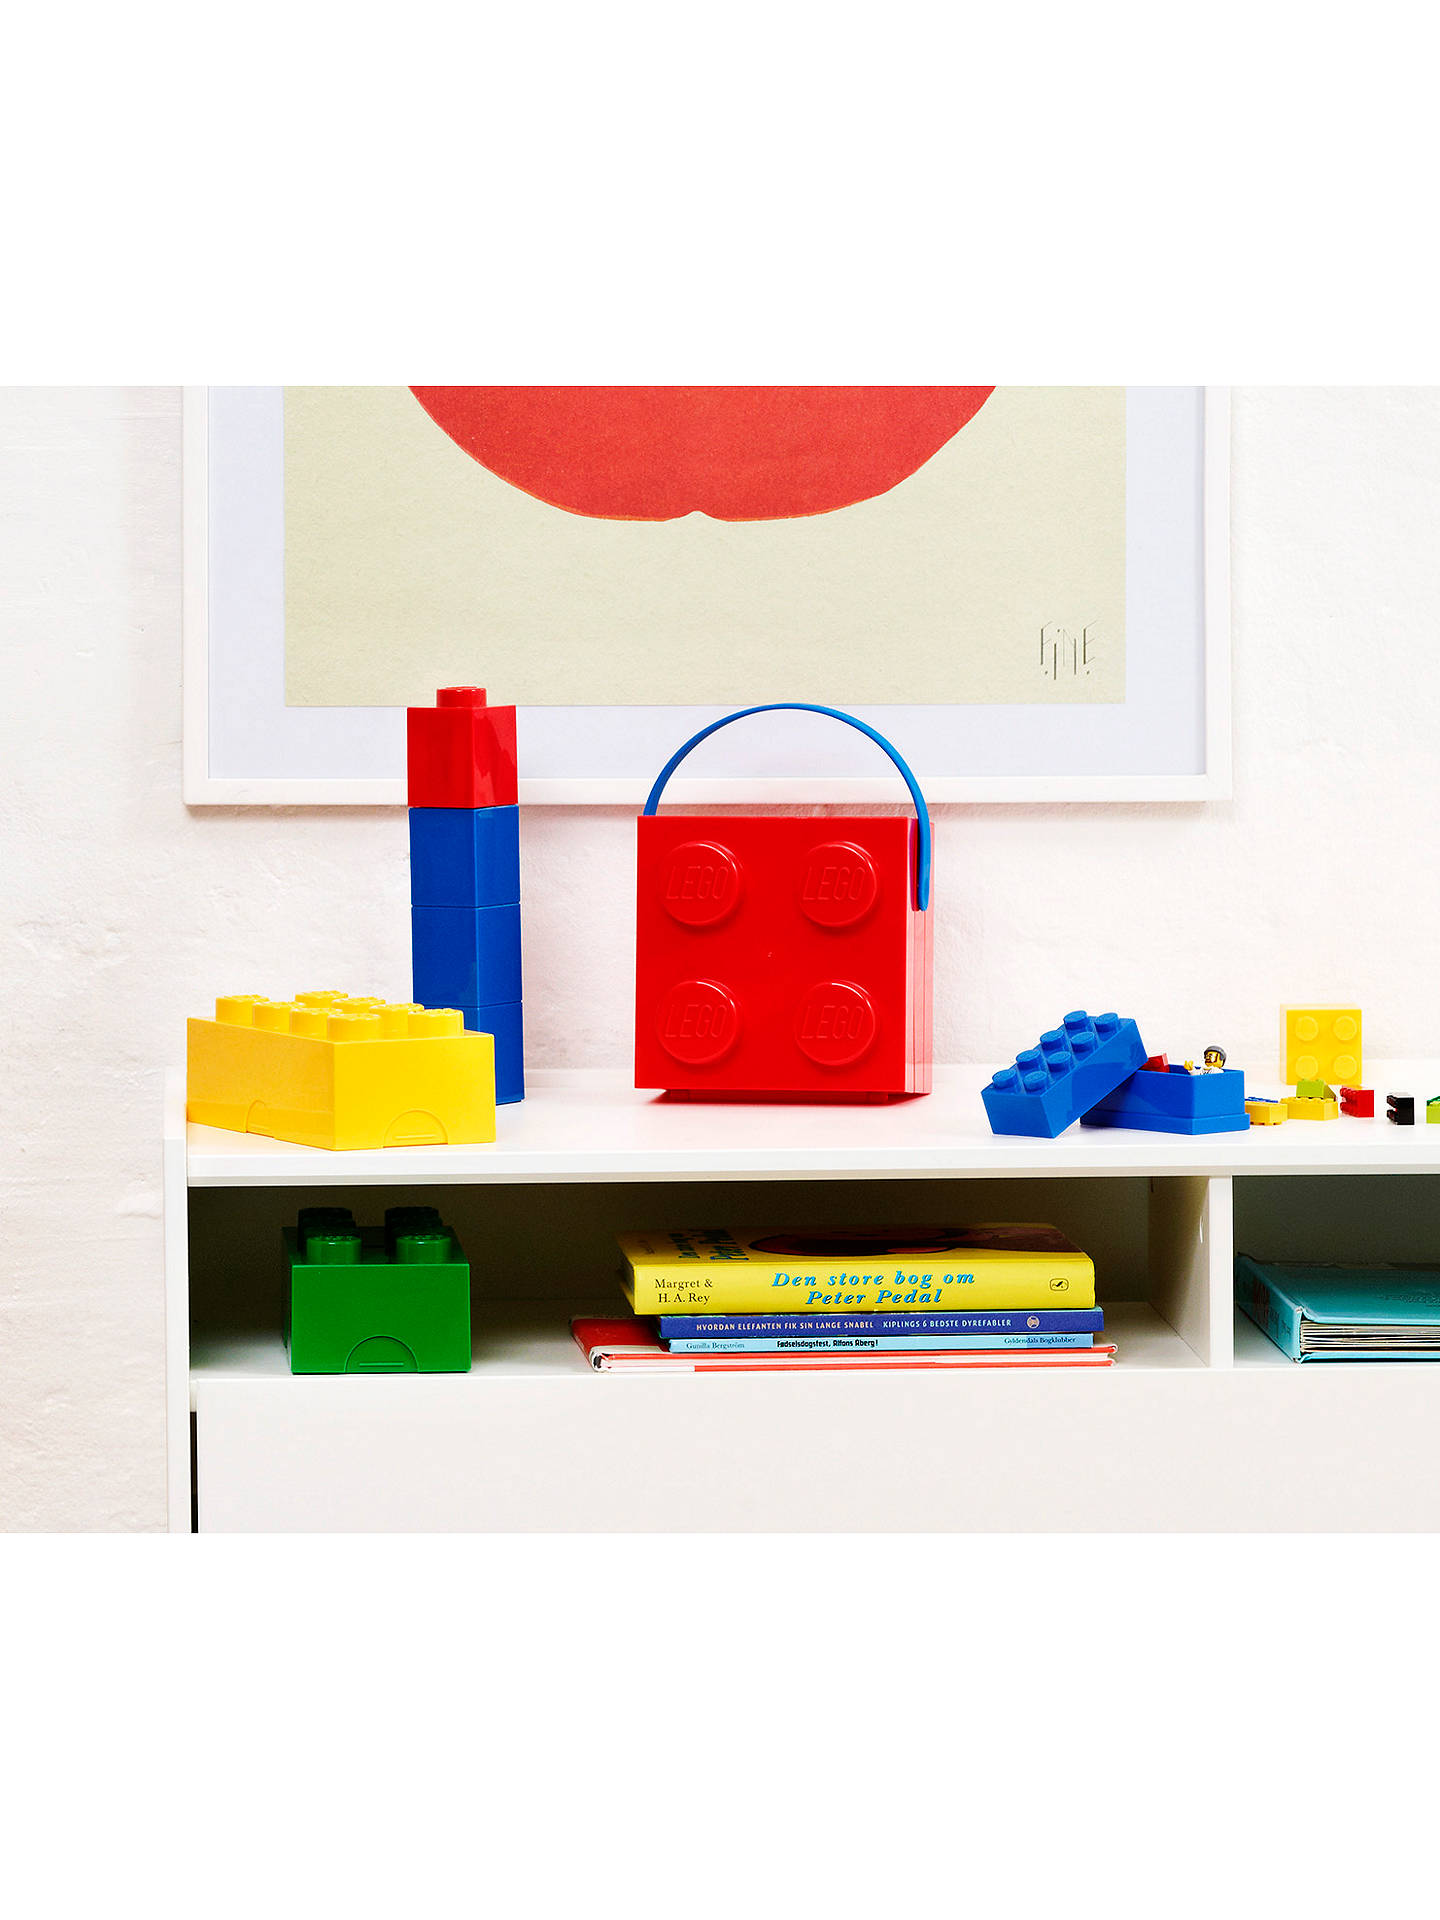 Buy LEGO 8 Stud Storage Brick, Yellow Online at johnlewis.com